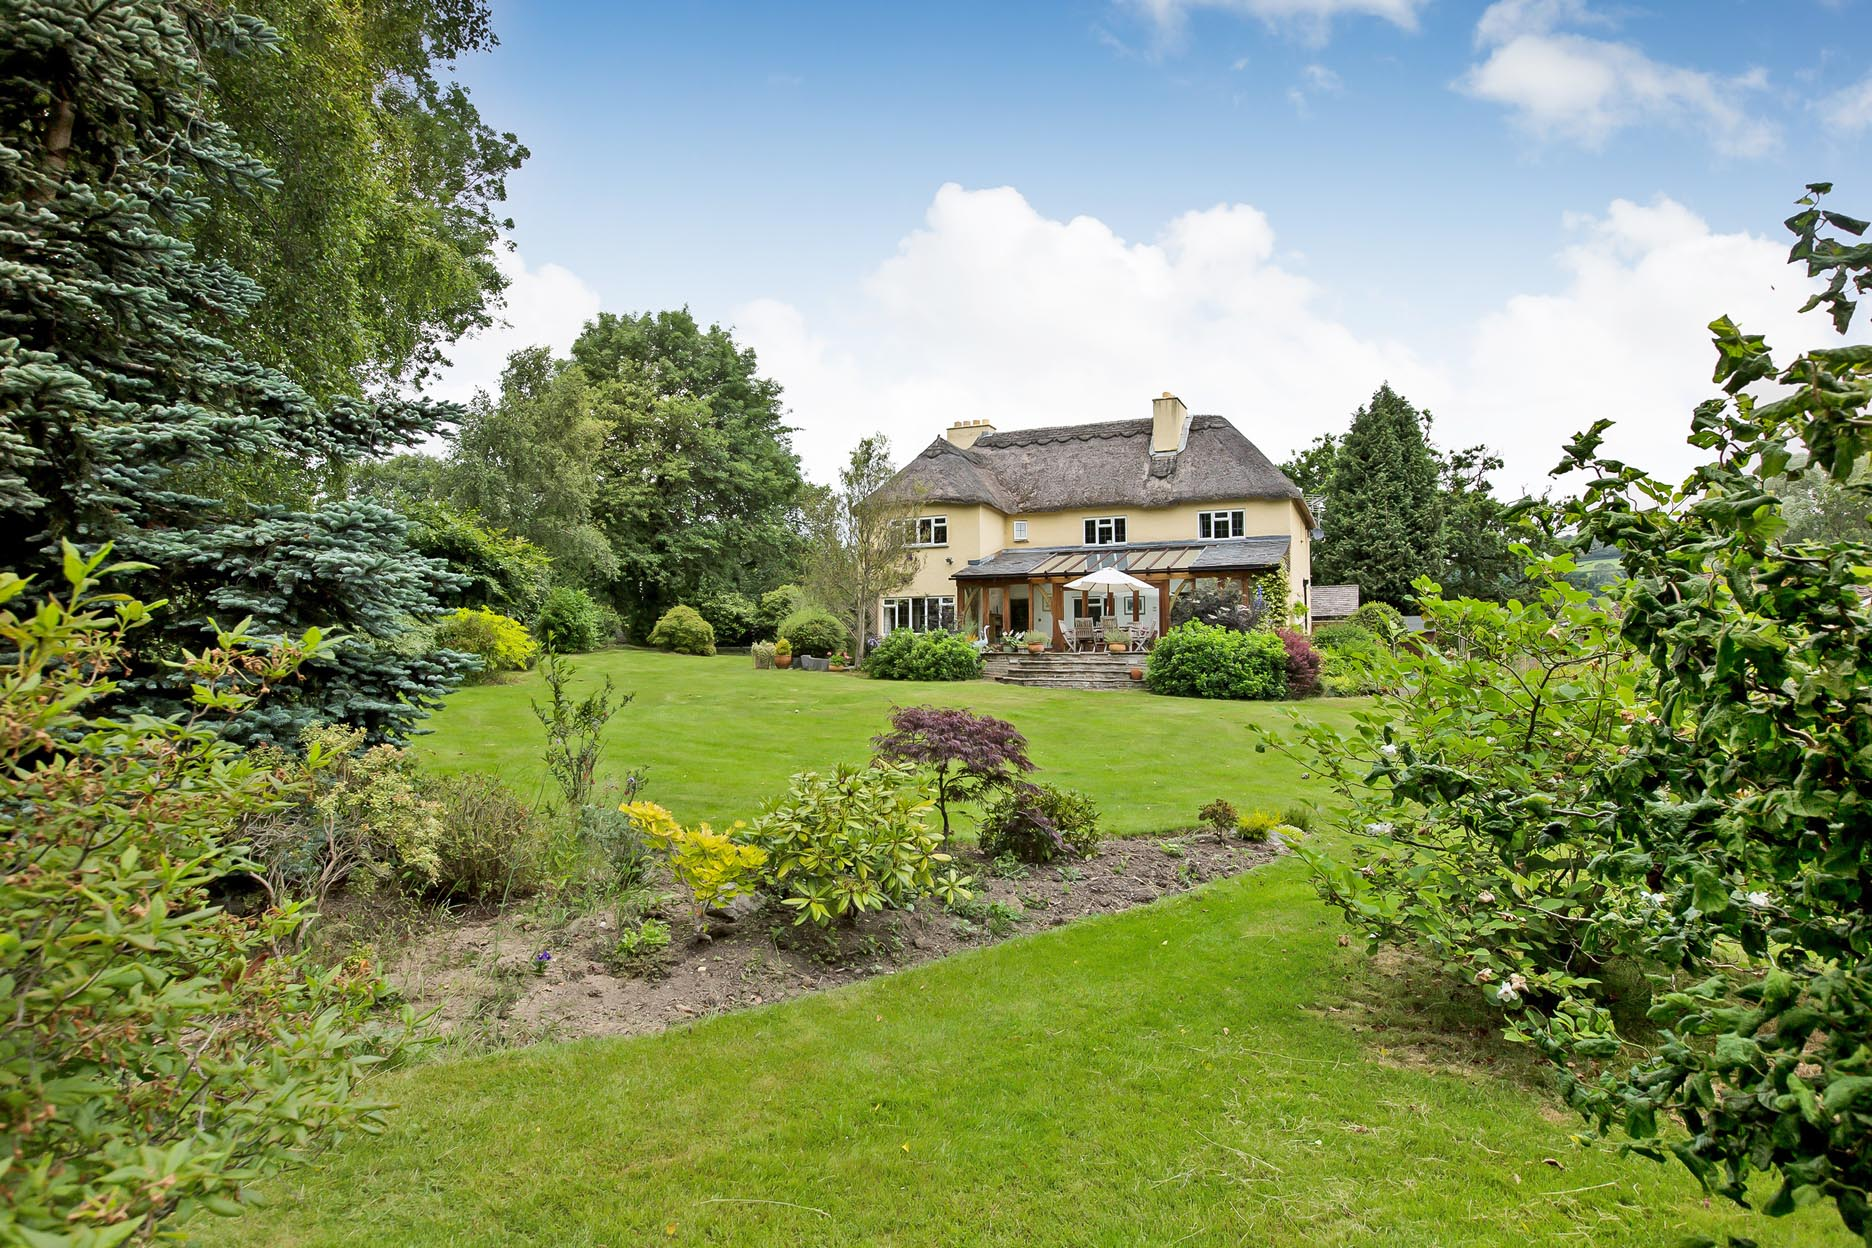 5 Bedroom House For Sale In Bovey Tracey